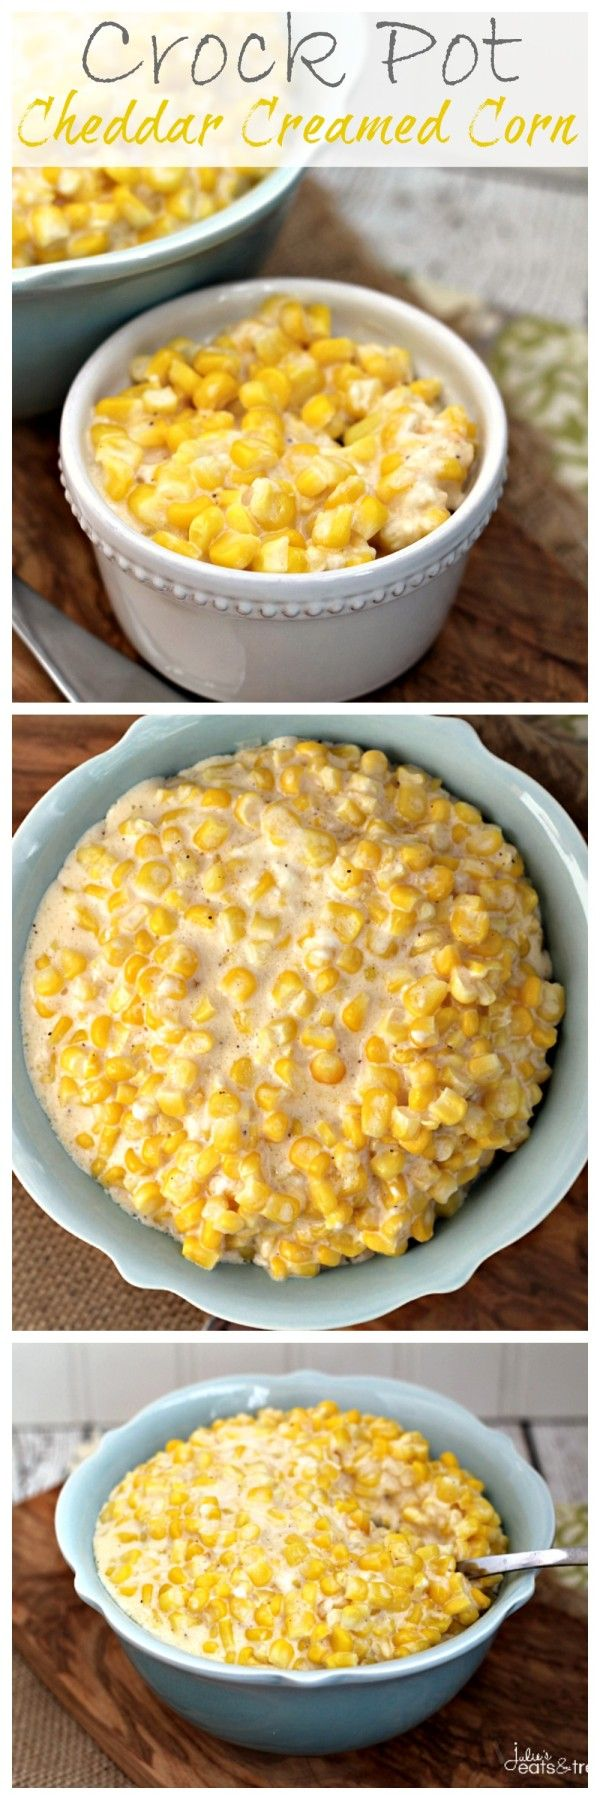 Crock Pot Cheddar Creamed Corn The Perfect Easy Side Dish For Your